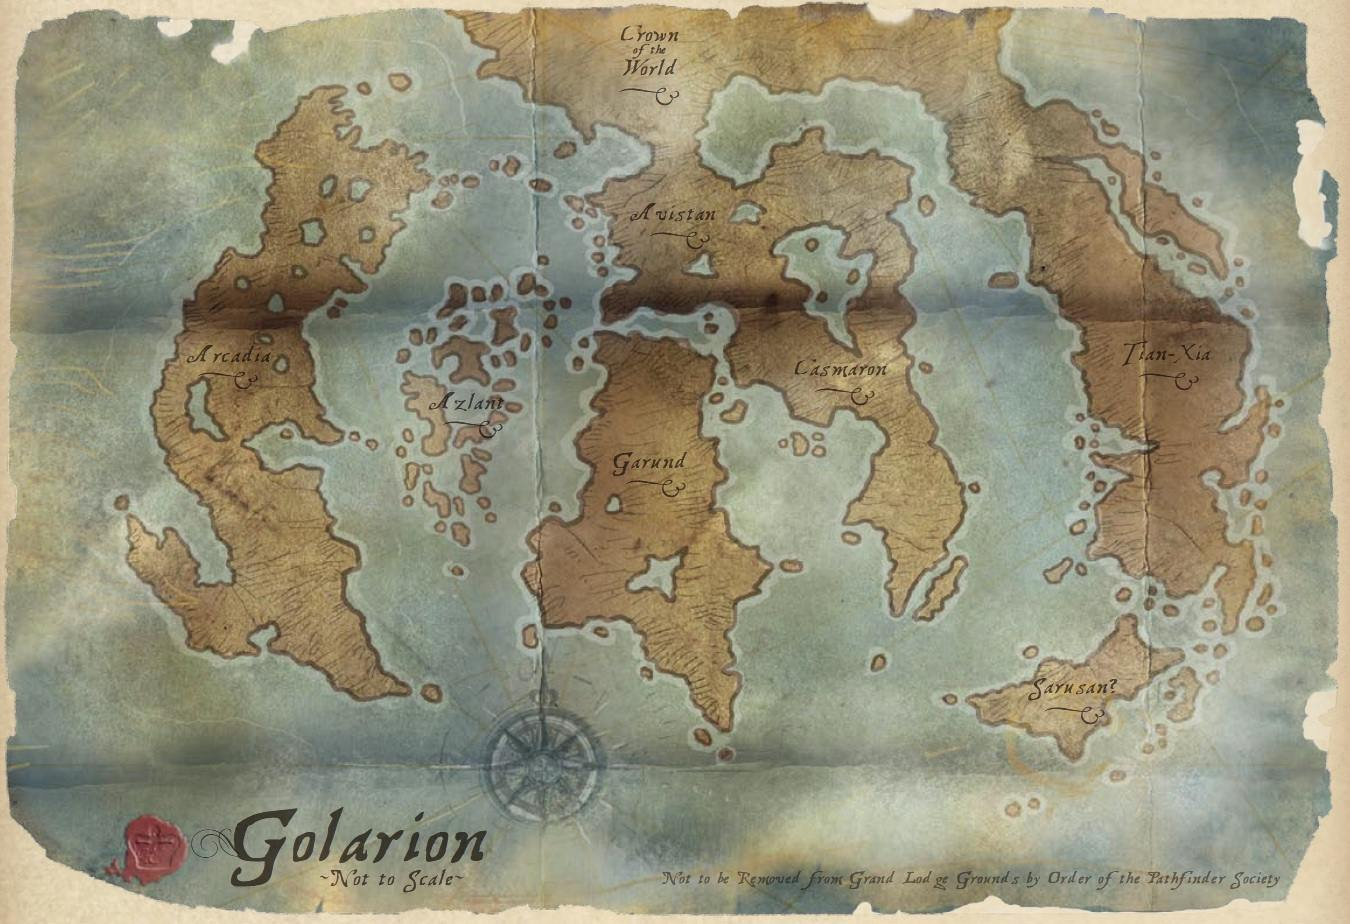 Superior The World Of Golarion: Map Collection